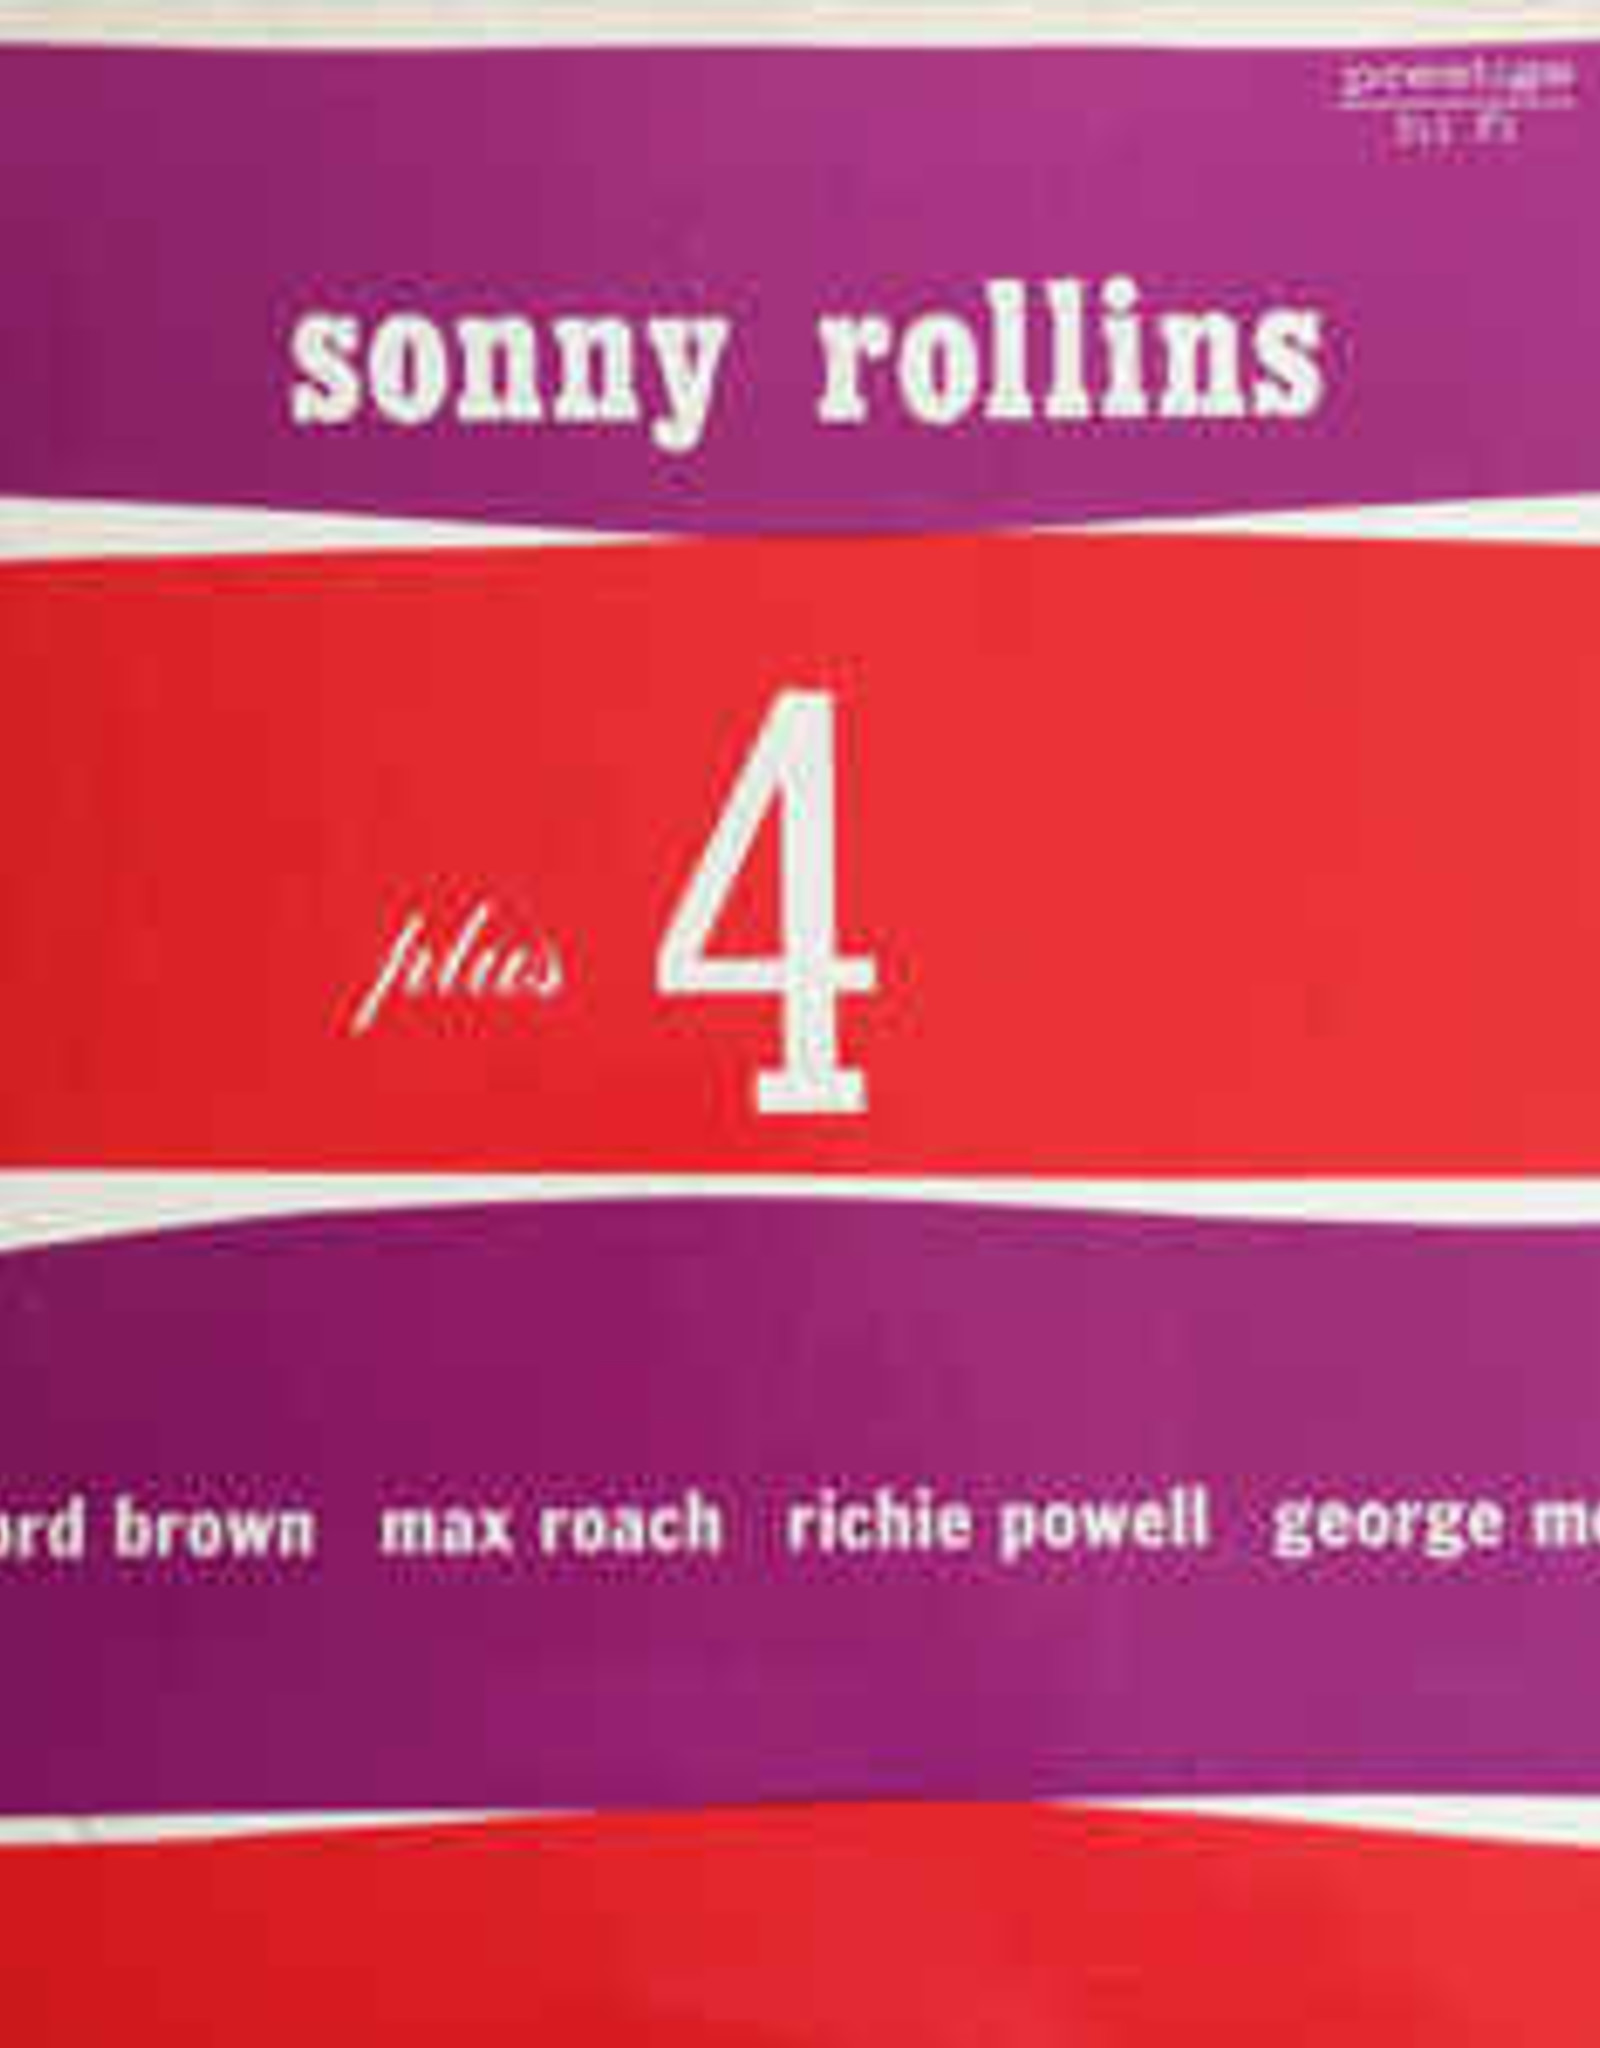 Sonny Rollins - Plus 4 (Clifford Brown / Max Roac